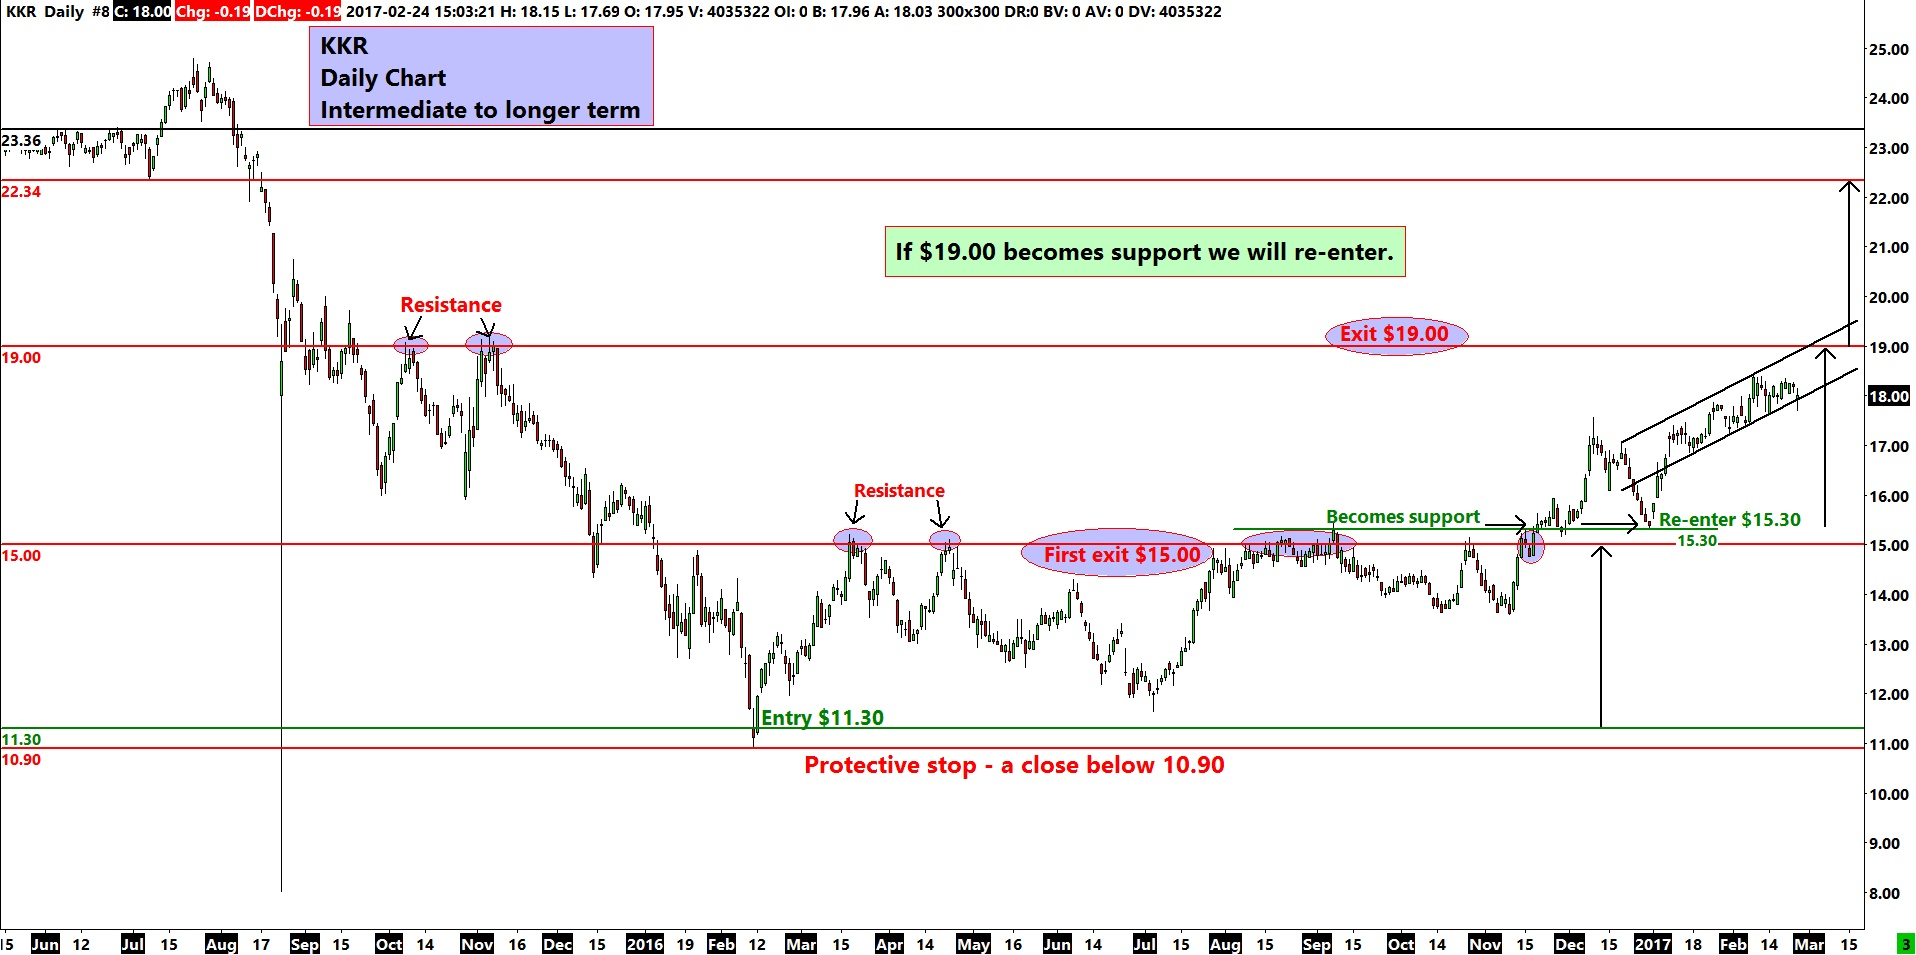 KKR Daily Chart - Intermediate to Longer Term Trade